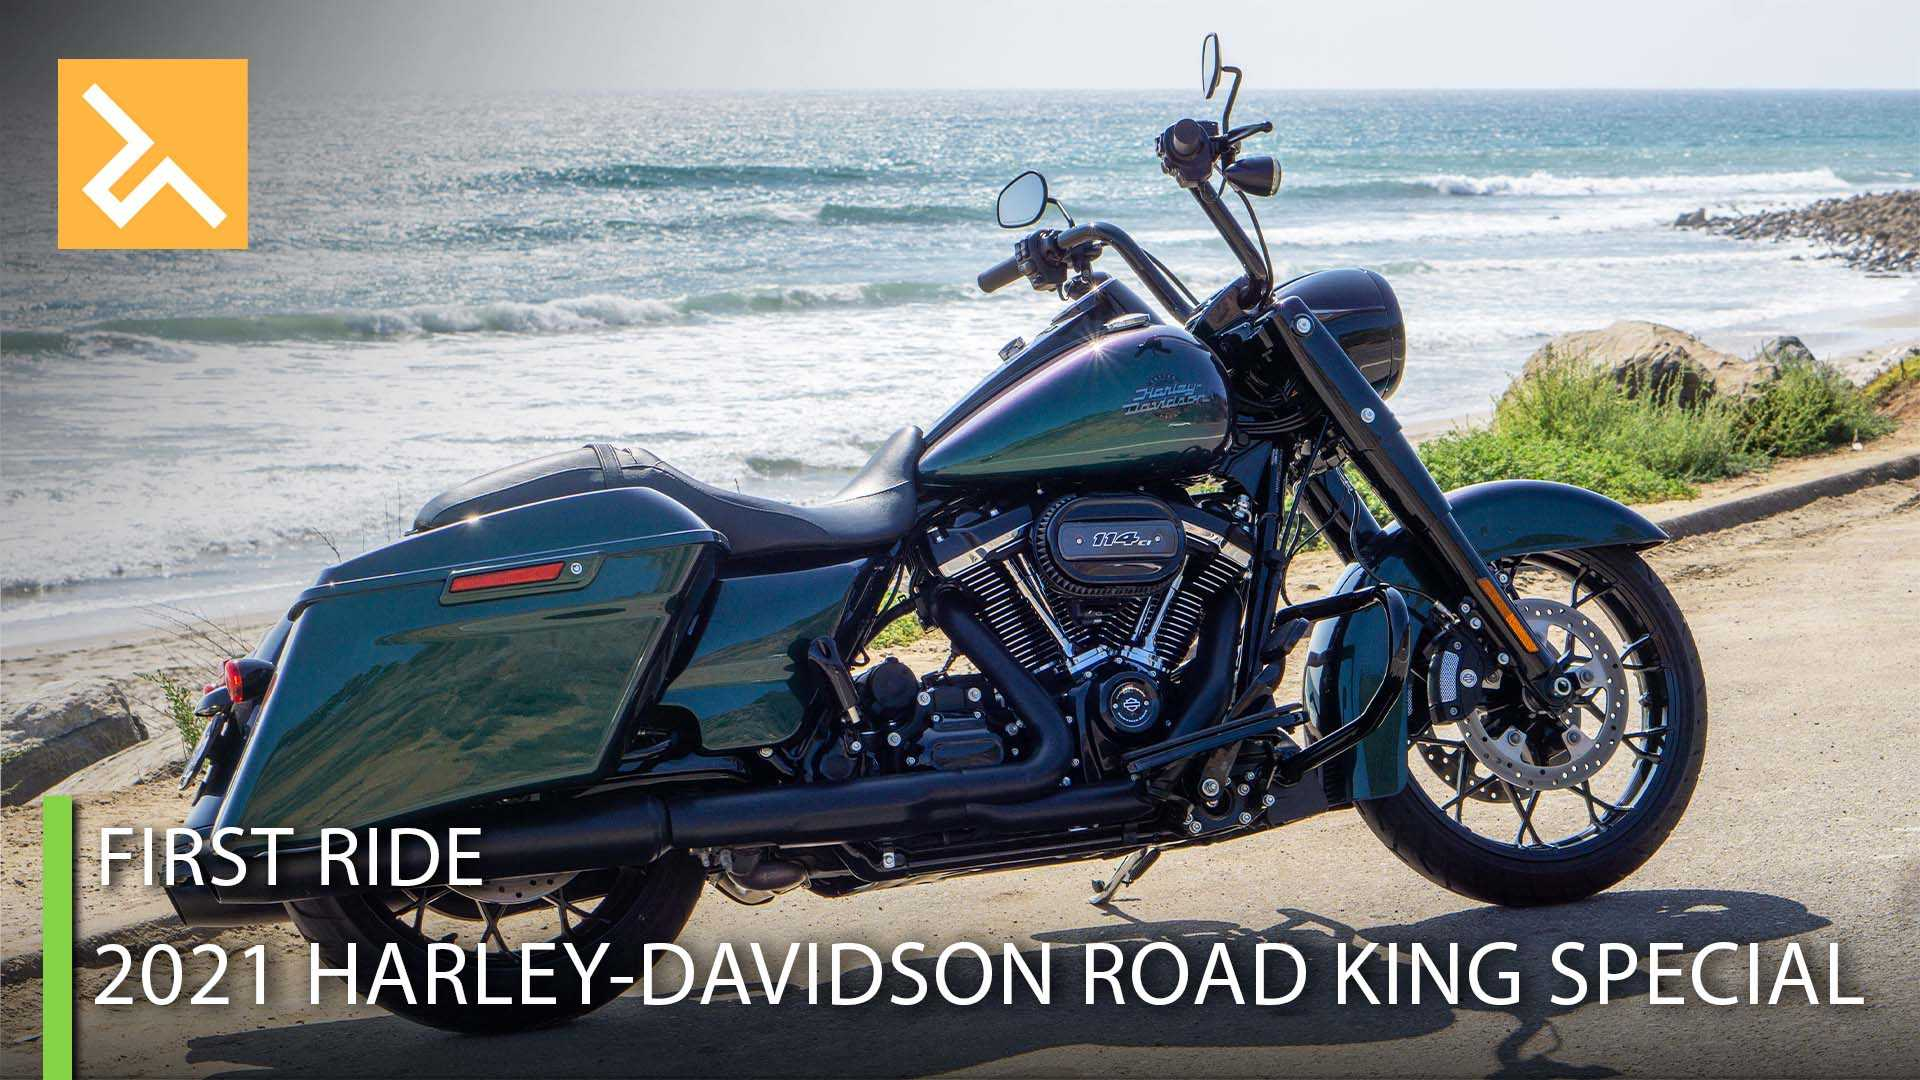 2021 Harley-Davidson Road King Special First Ride Review